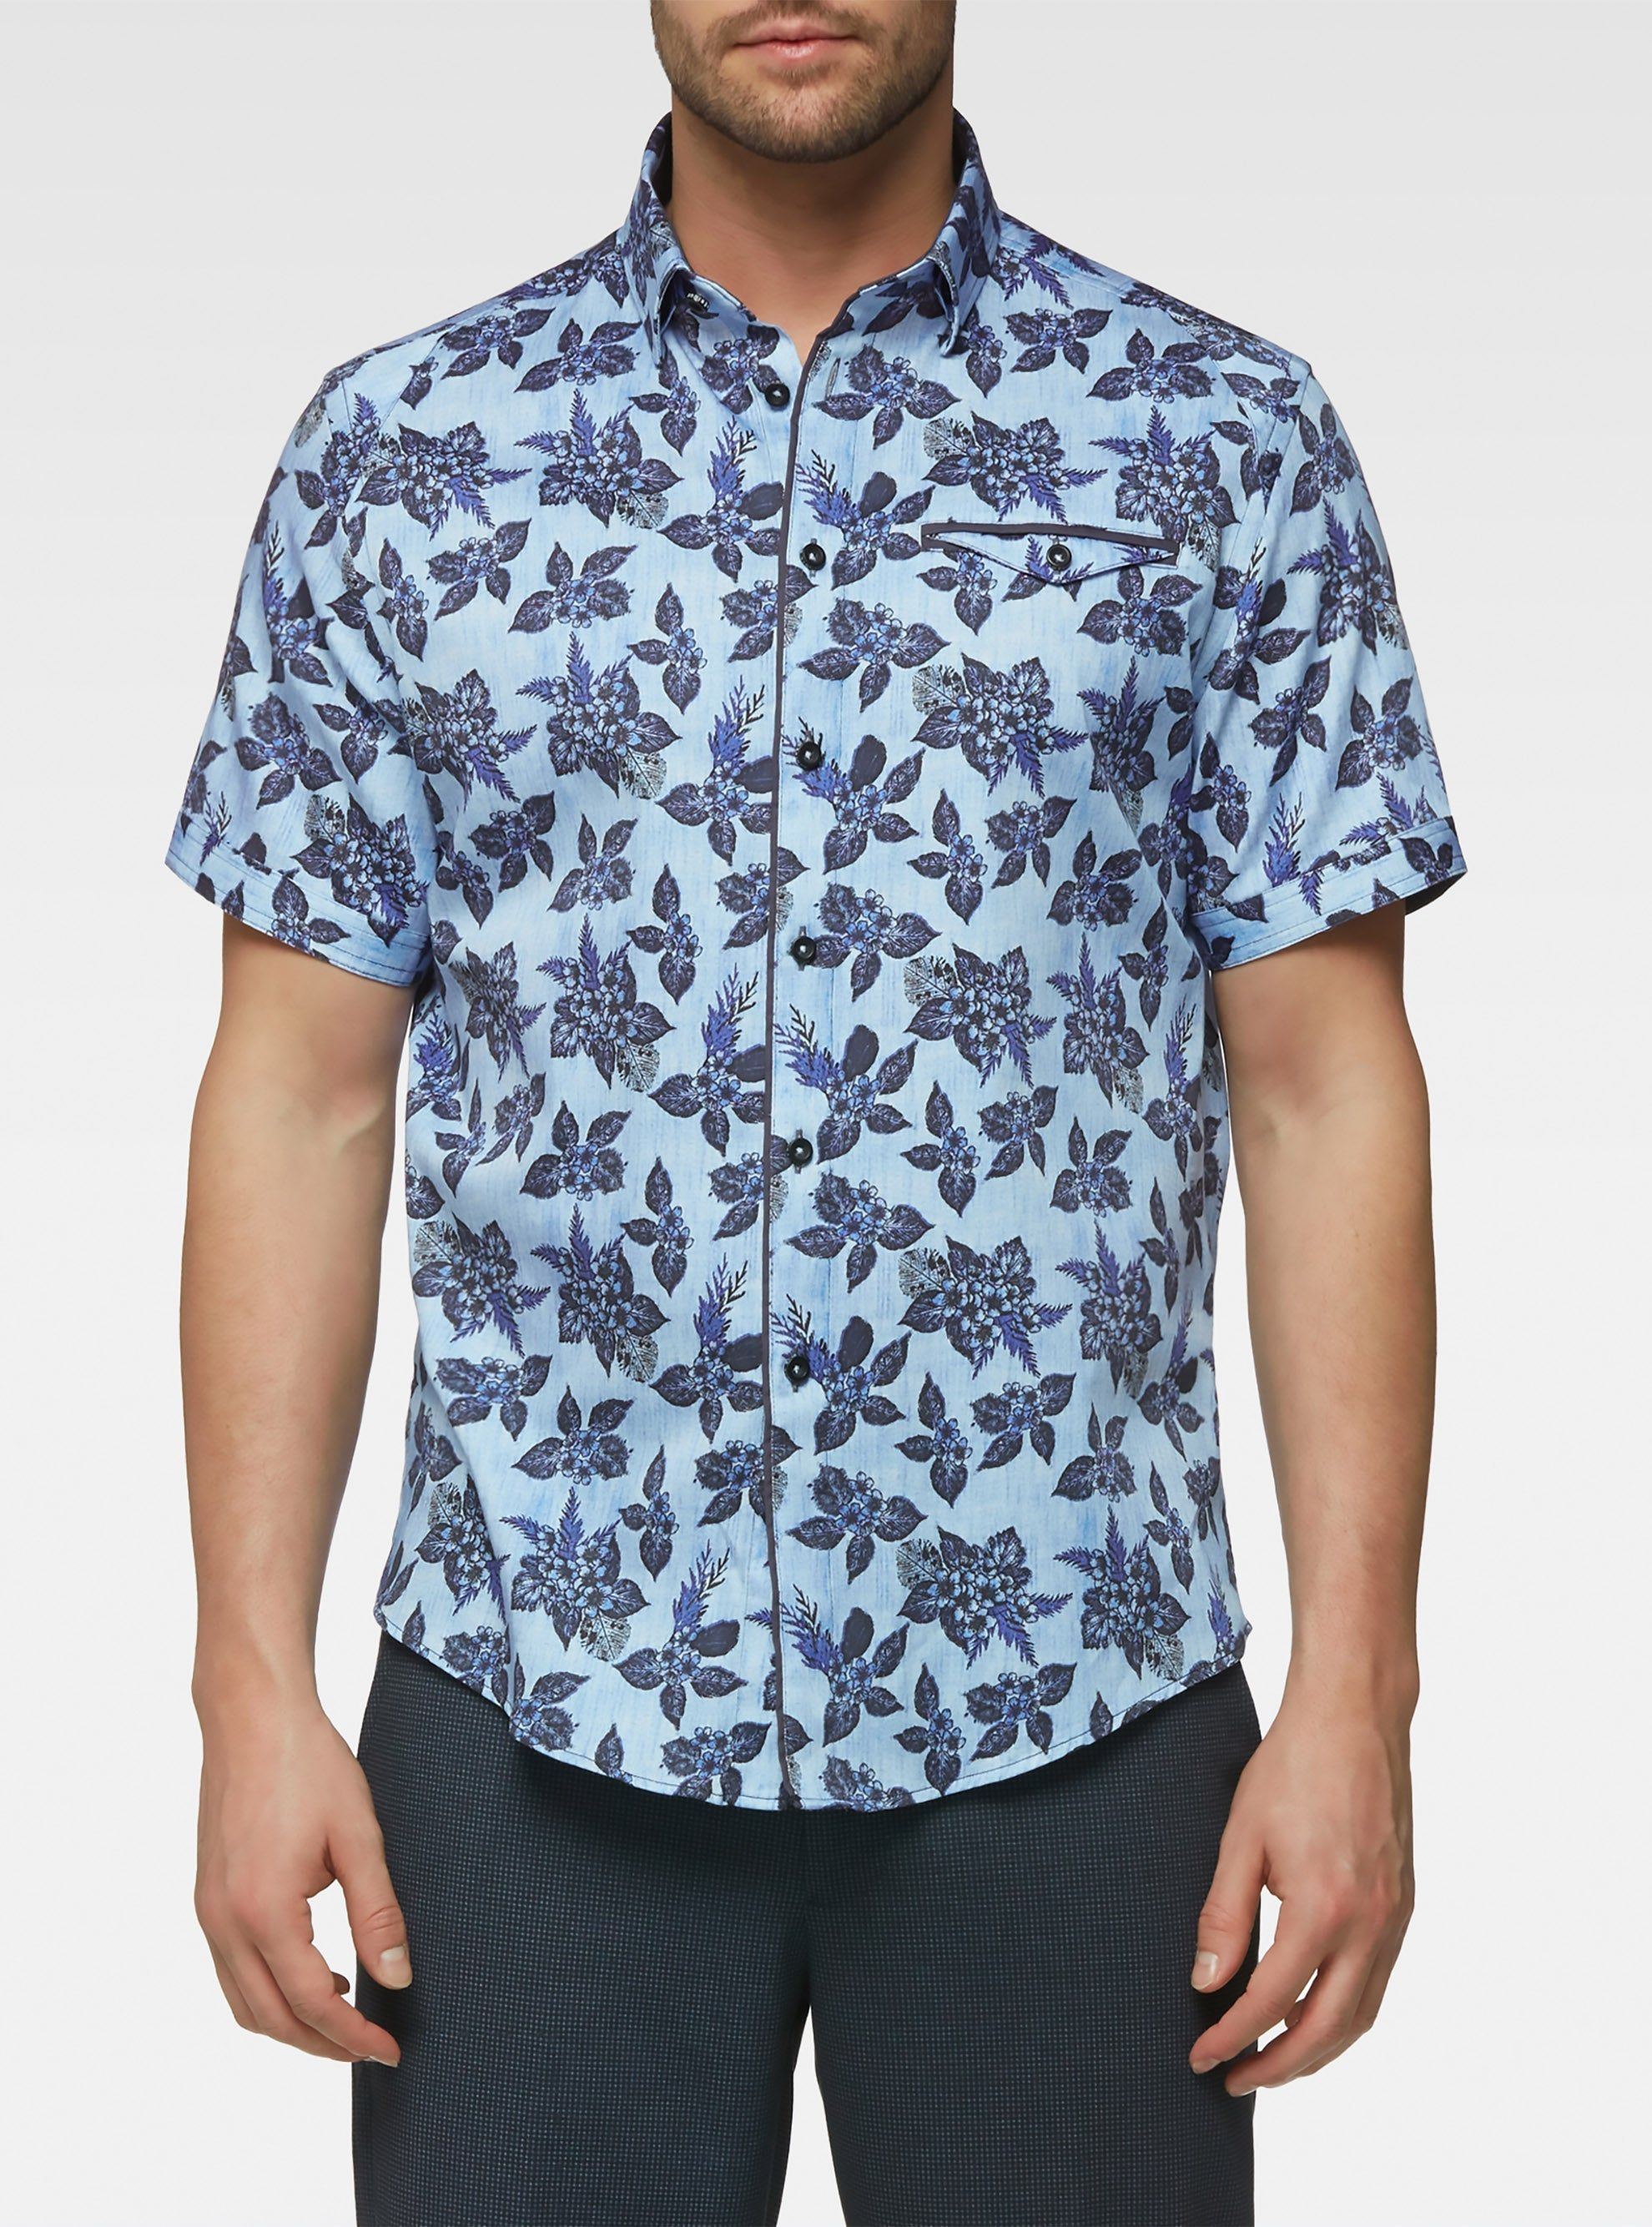 Short sleeve vintage floral printed shirts